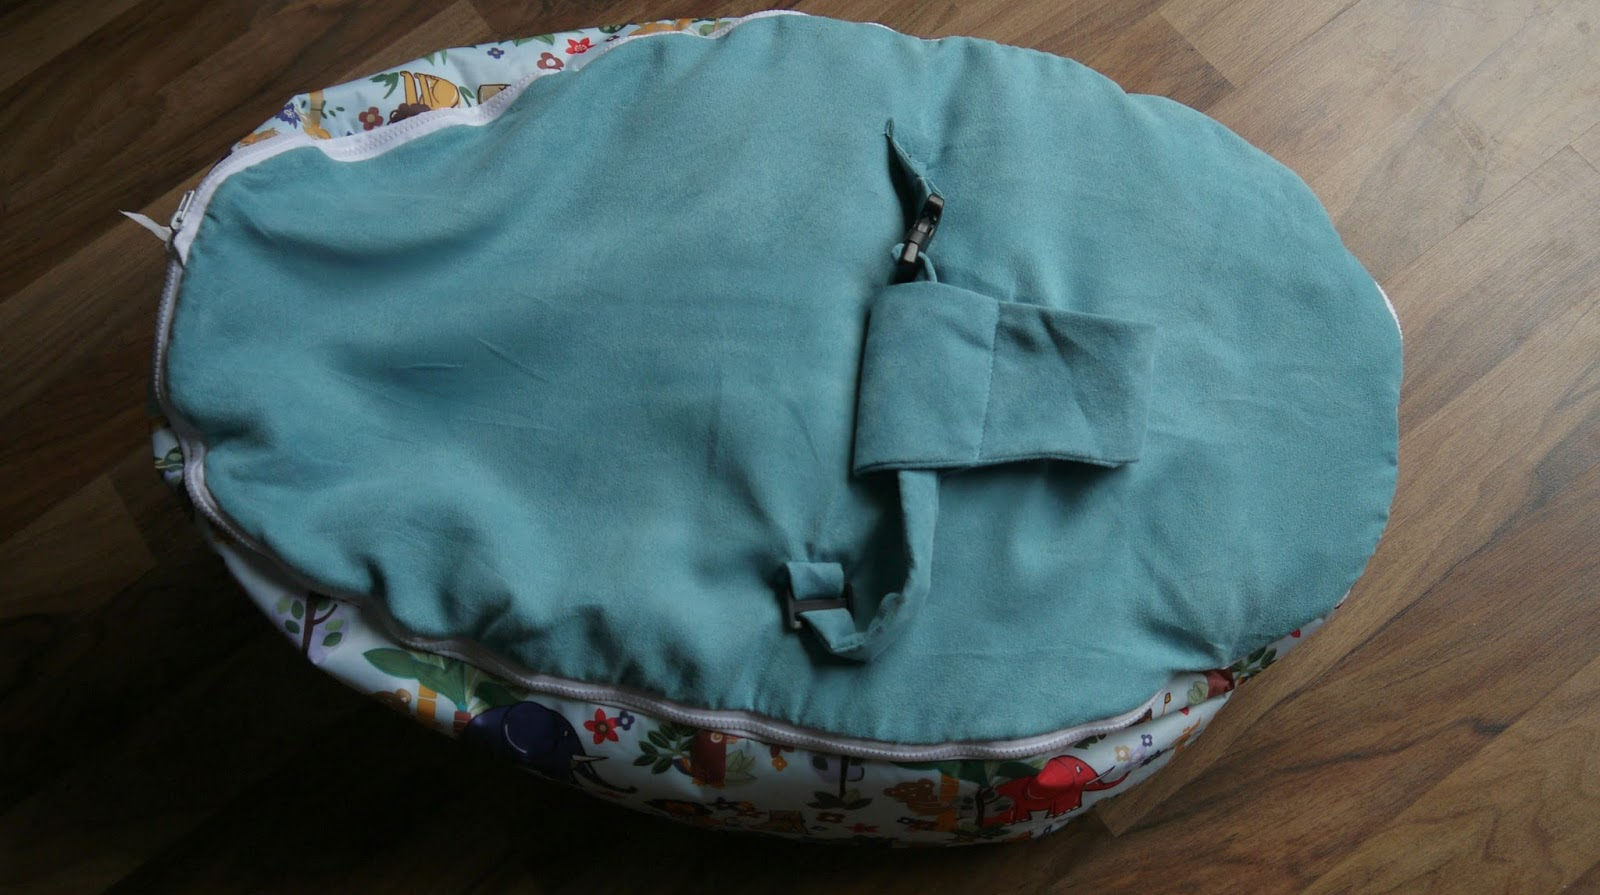 Teal Bean Bag Chair Ergonomic Stool Paige 39s Preferences Mummy Monday Baby